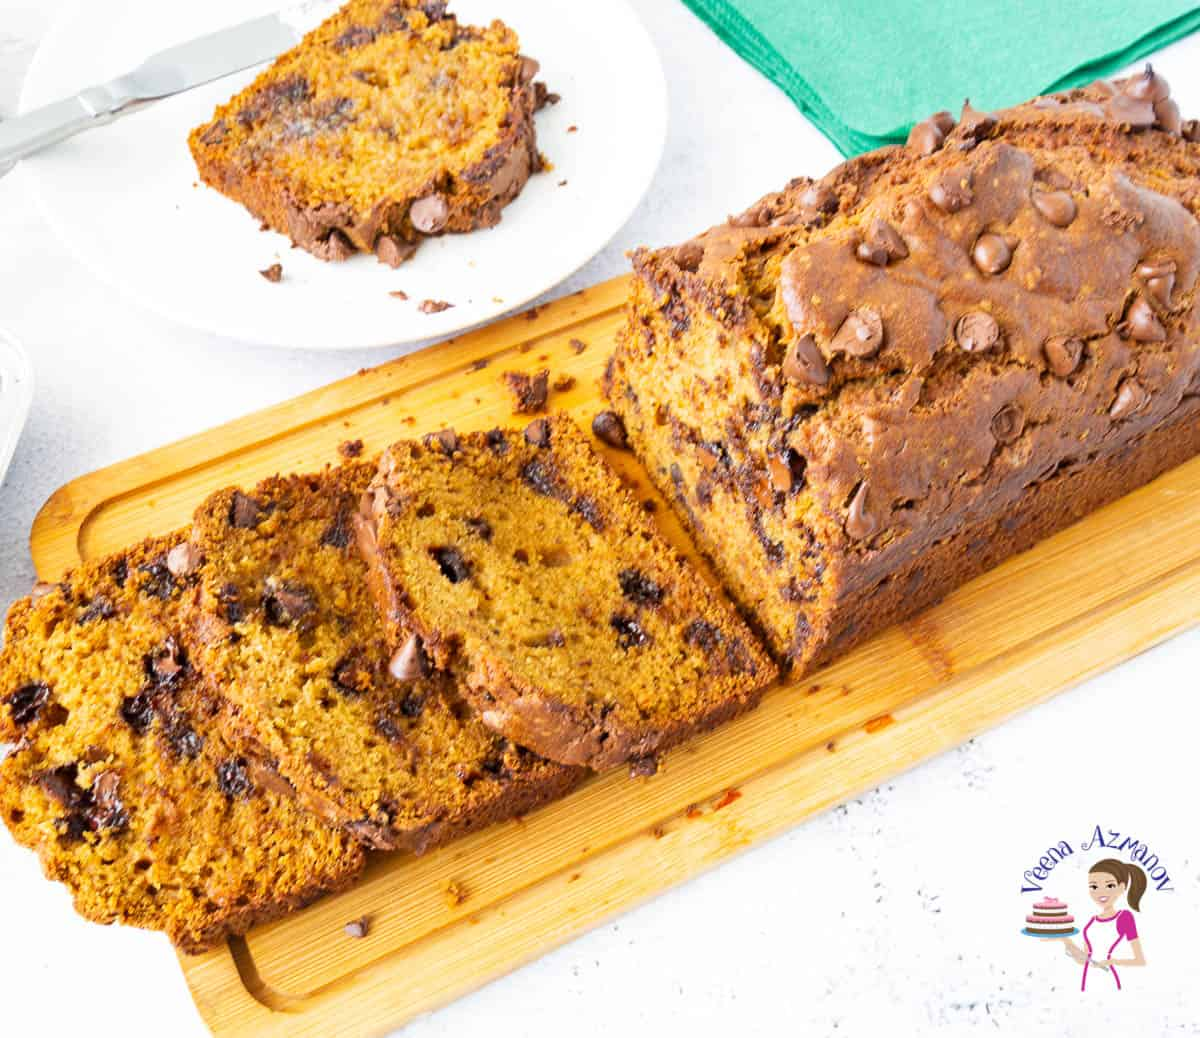 Chocolate chip pumpkin bread on a wooden board